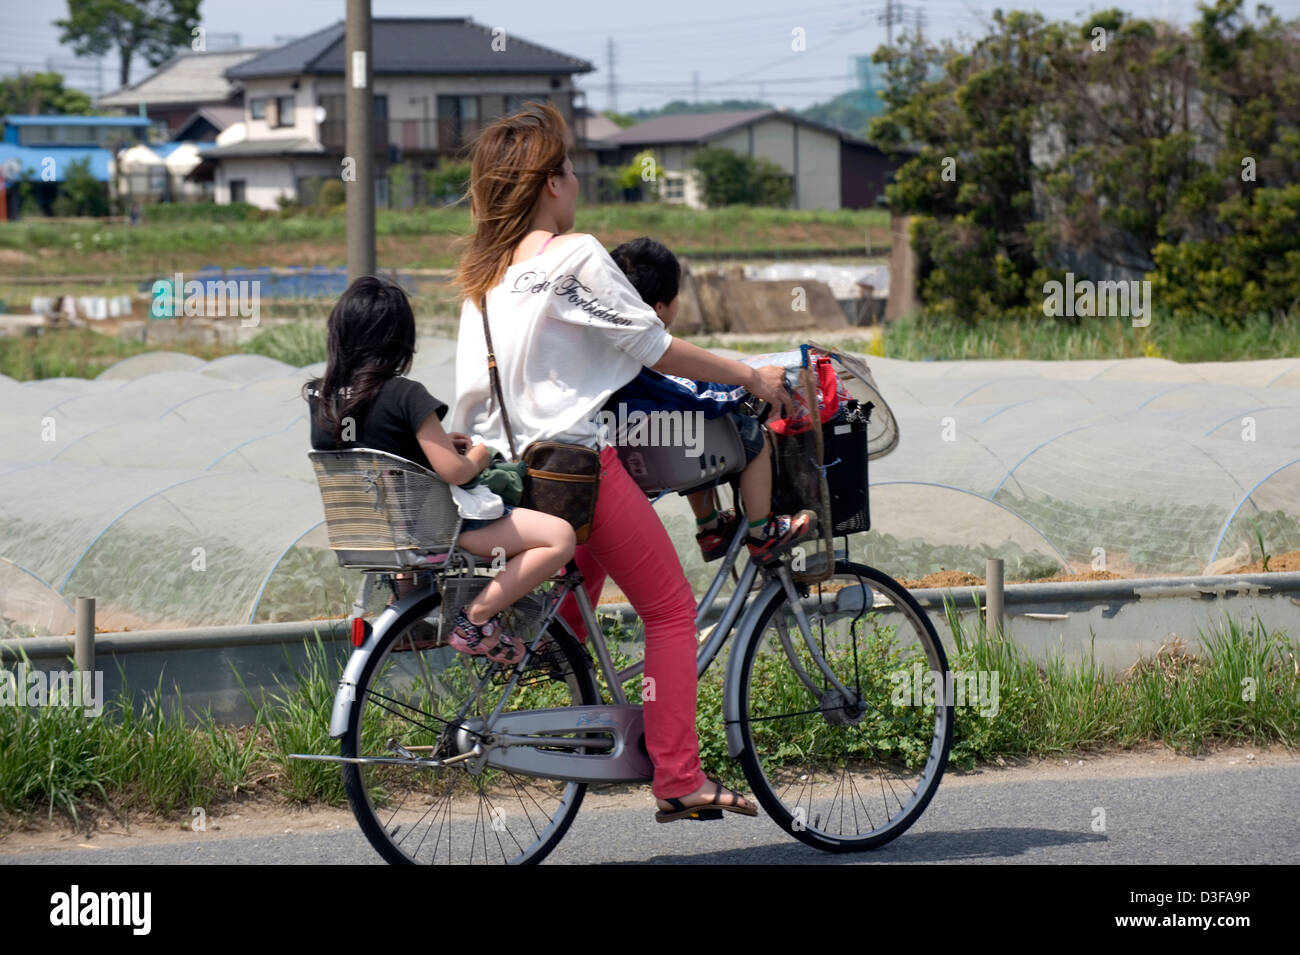 Mother rides through Kanagawa Prefecture countryside on a bicycle with son and daughter aboard in special seats - Stock Image